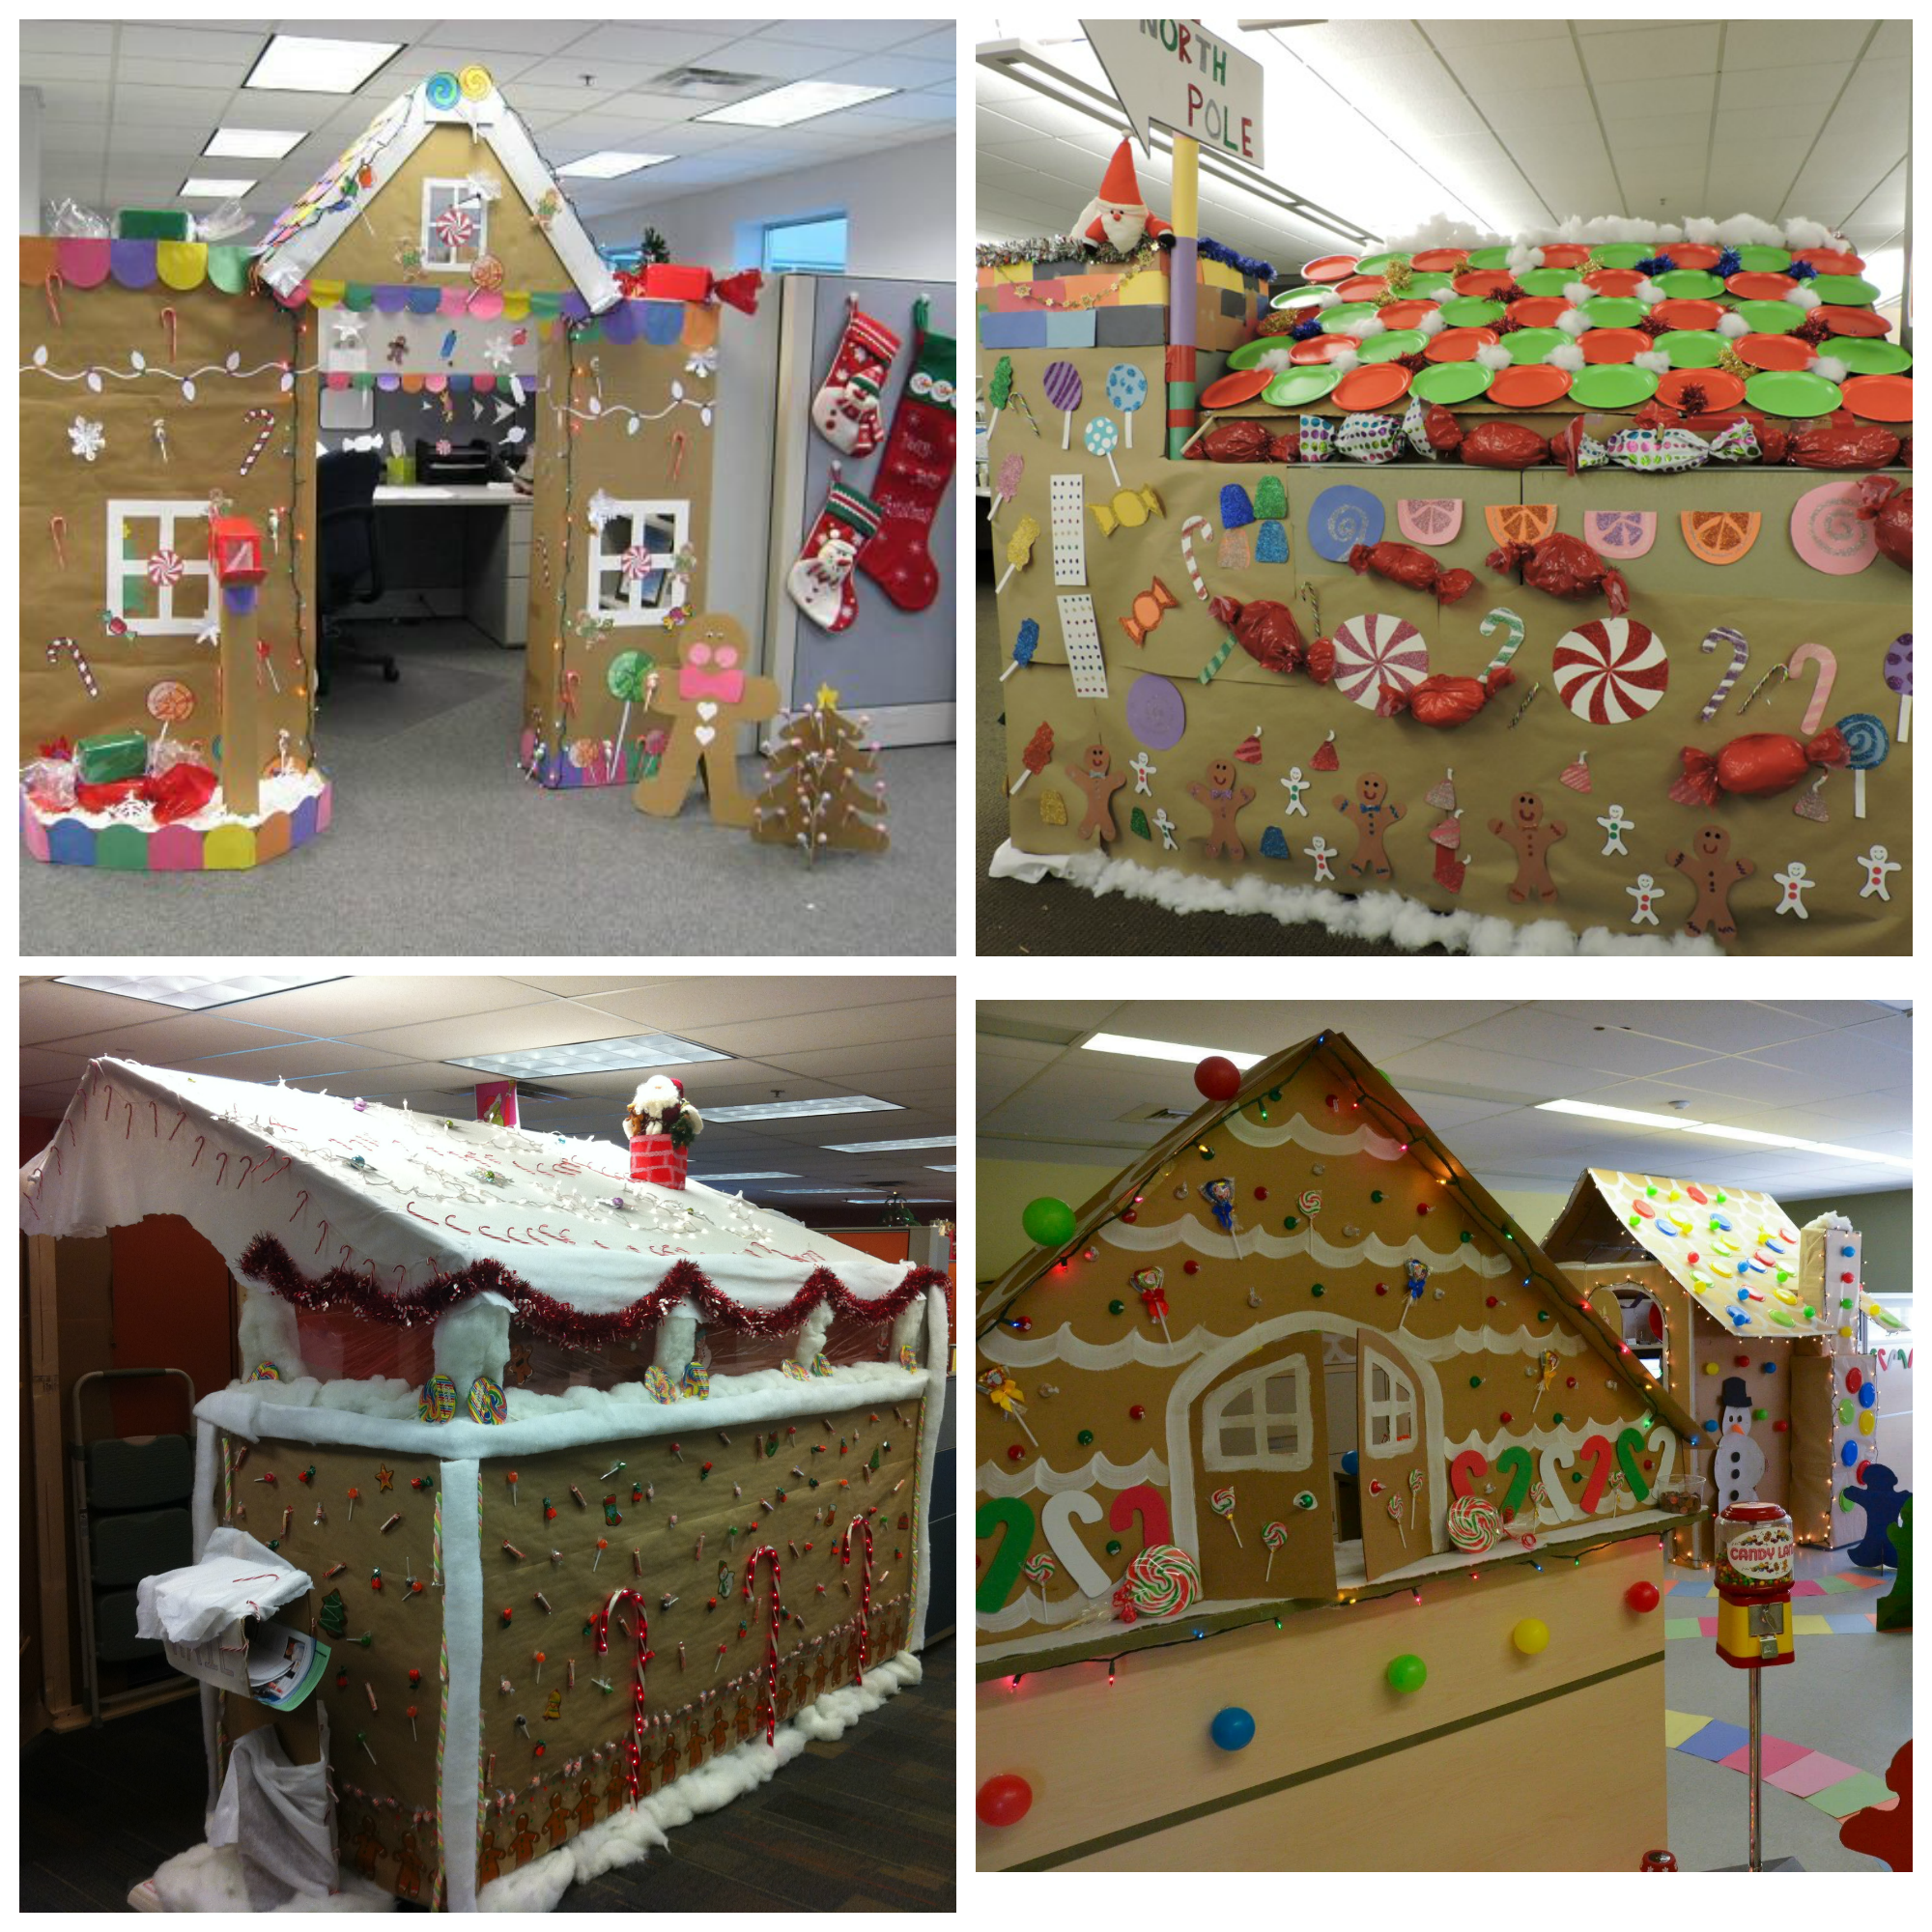 gngerbread chrstmas cubcle chrstmas offce decor.htm how to turn your office cubicle into a winter wonderland  with  office cubicle into a winter wonderland